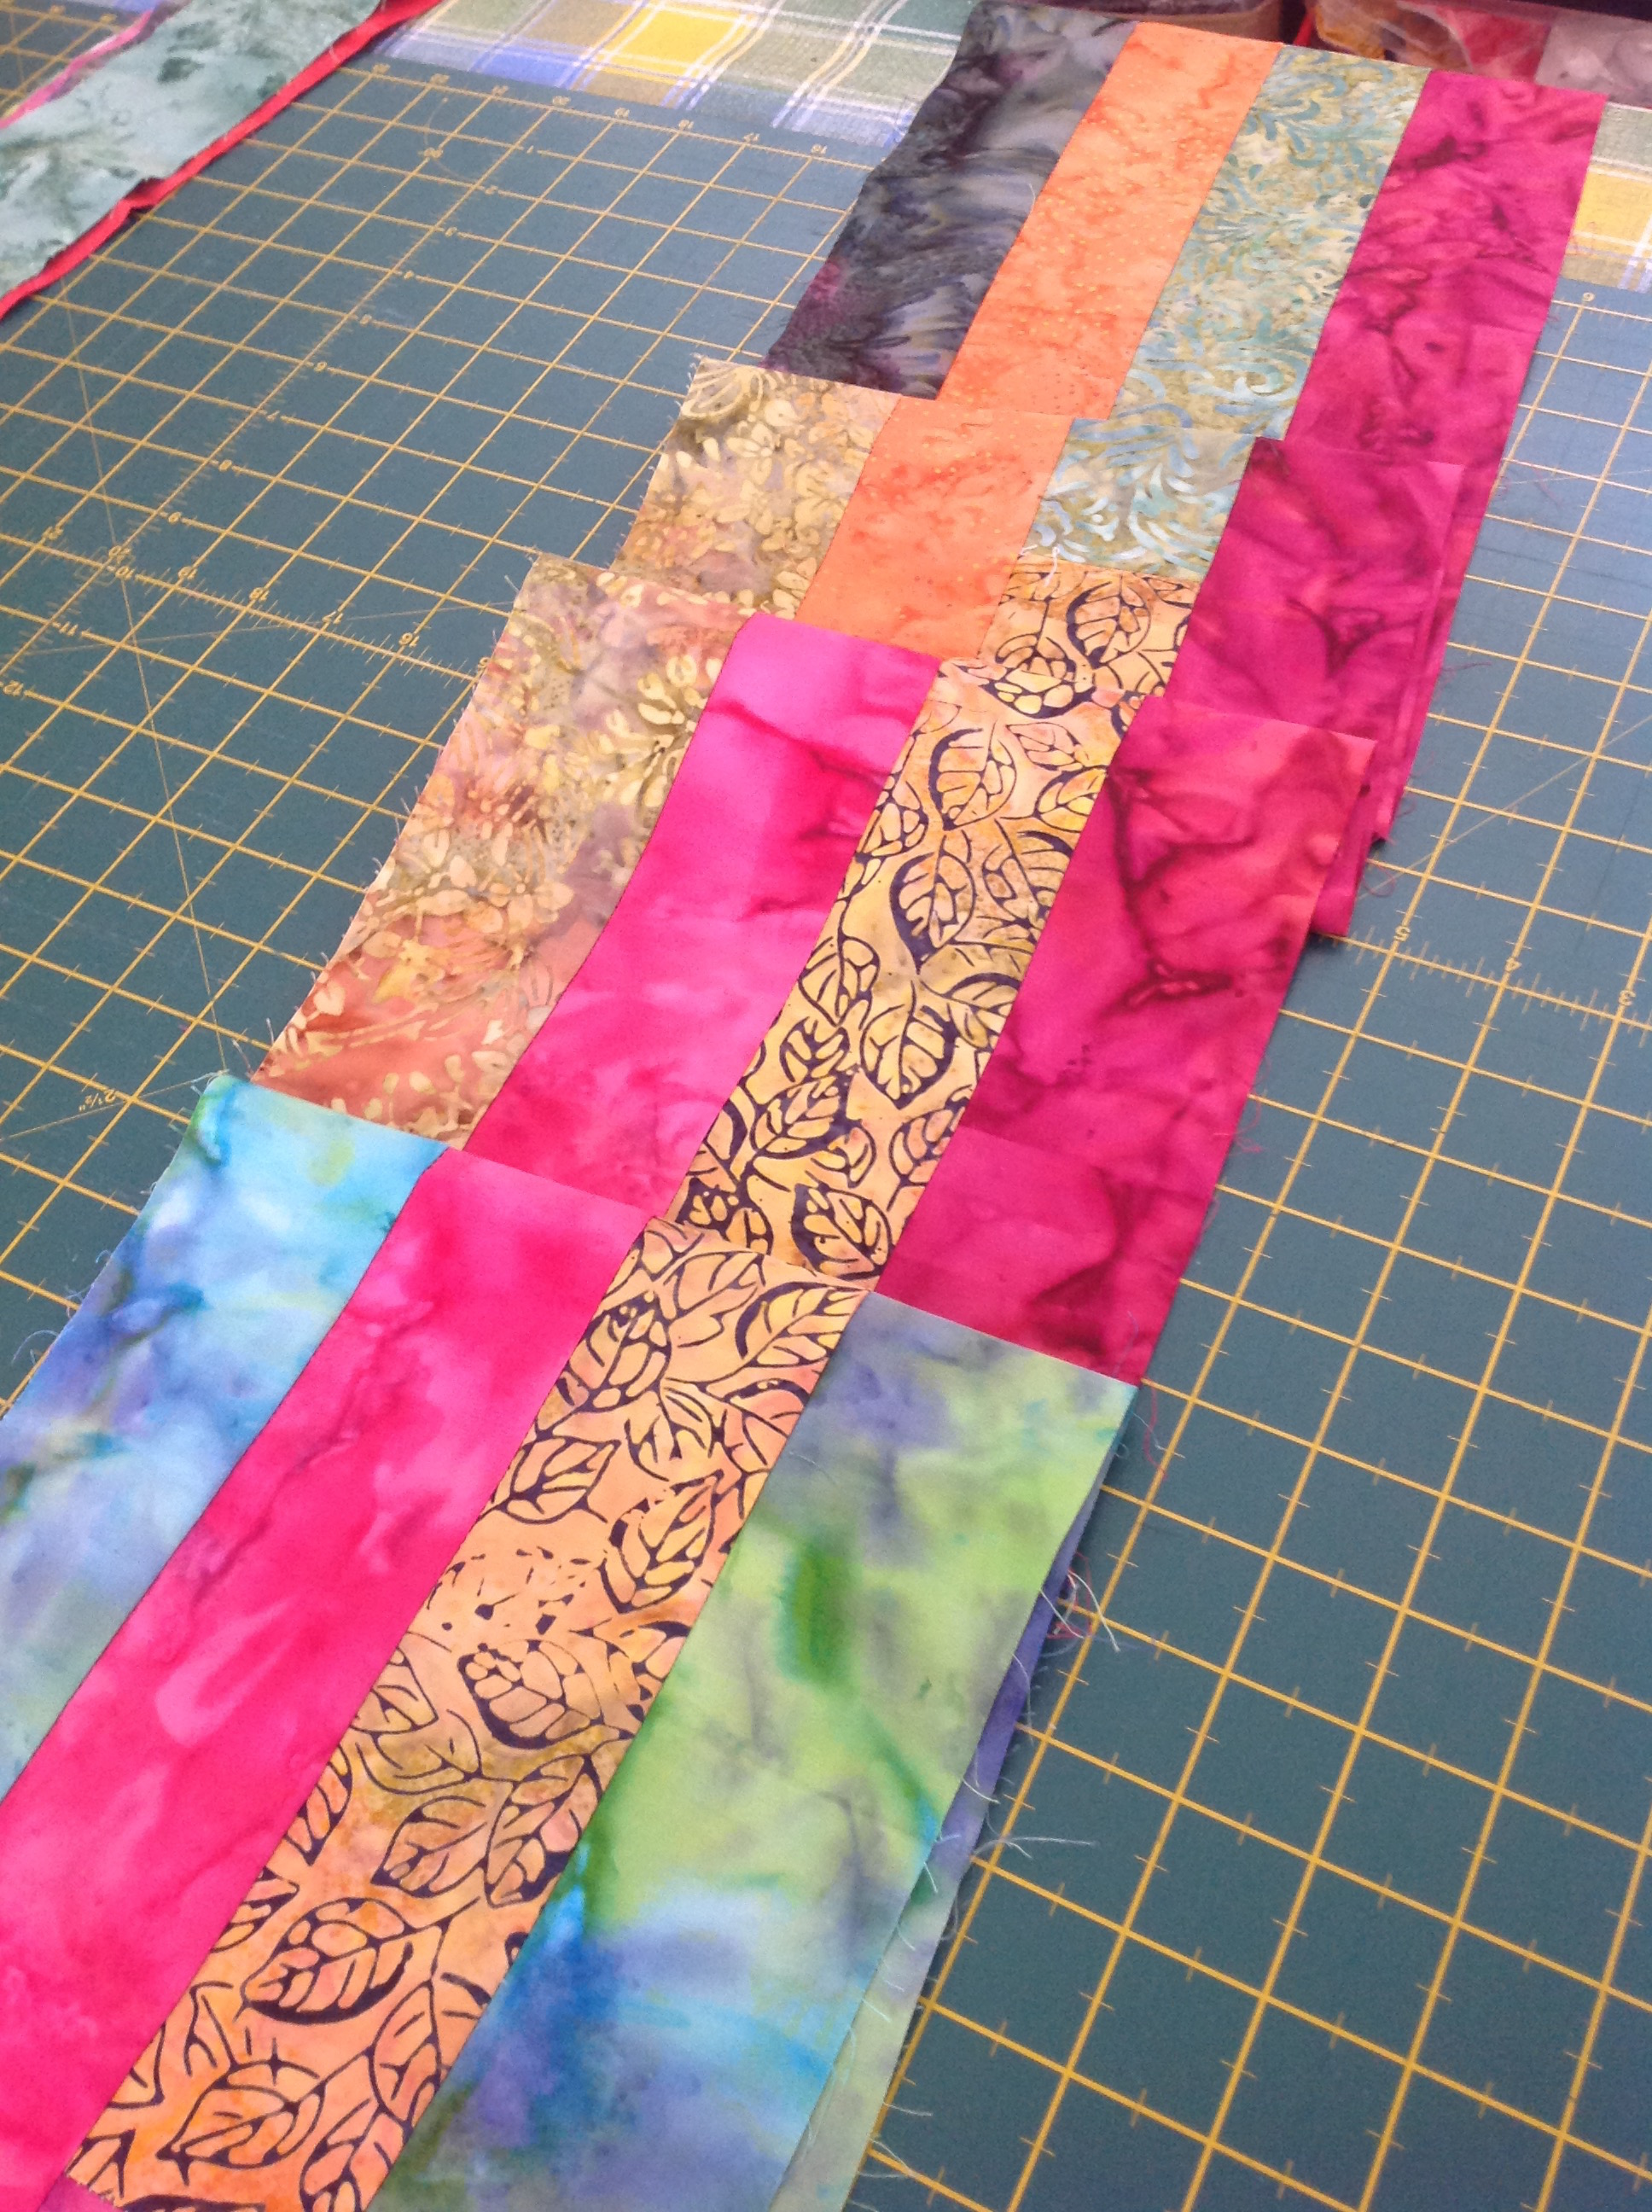 How to Make an Easy Jelly Roll Scarf